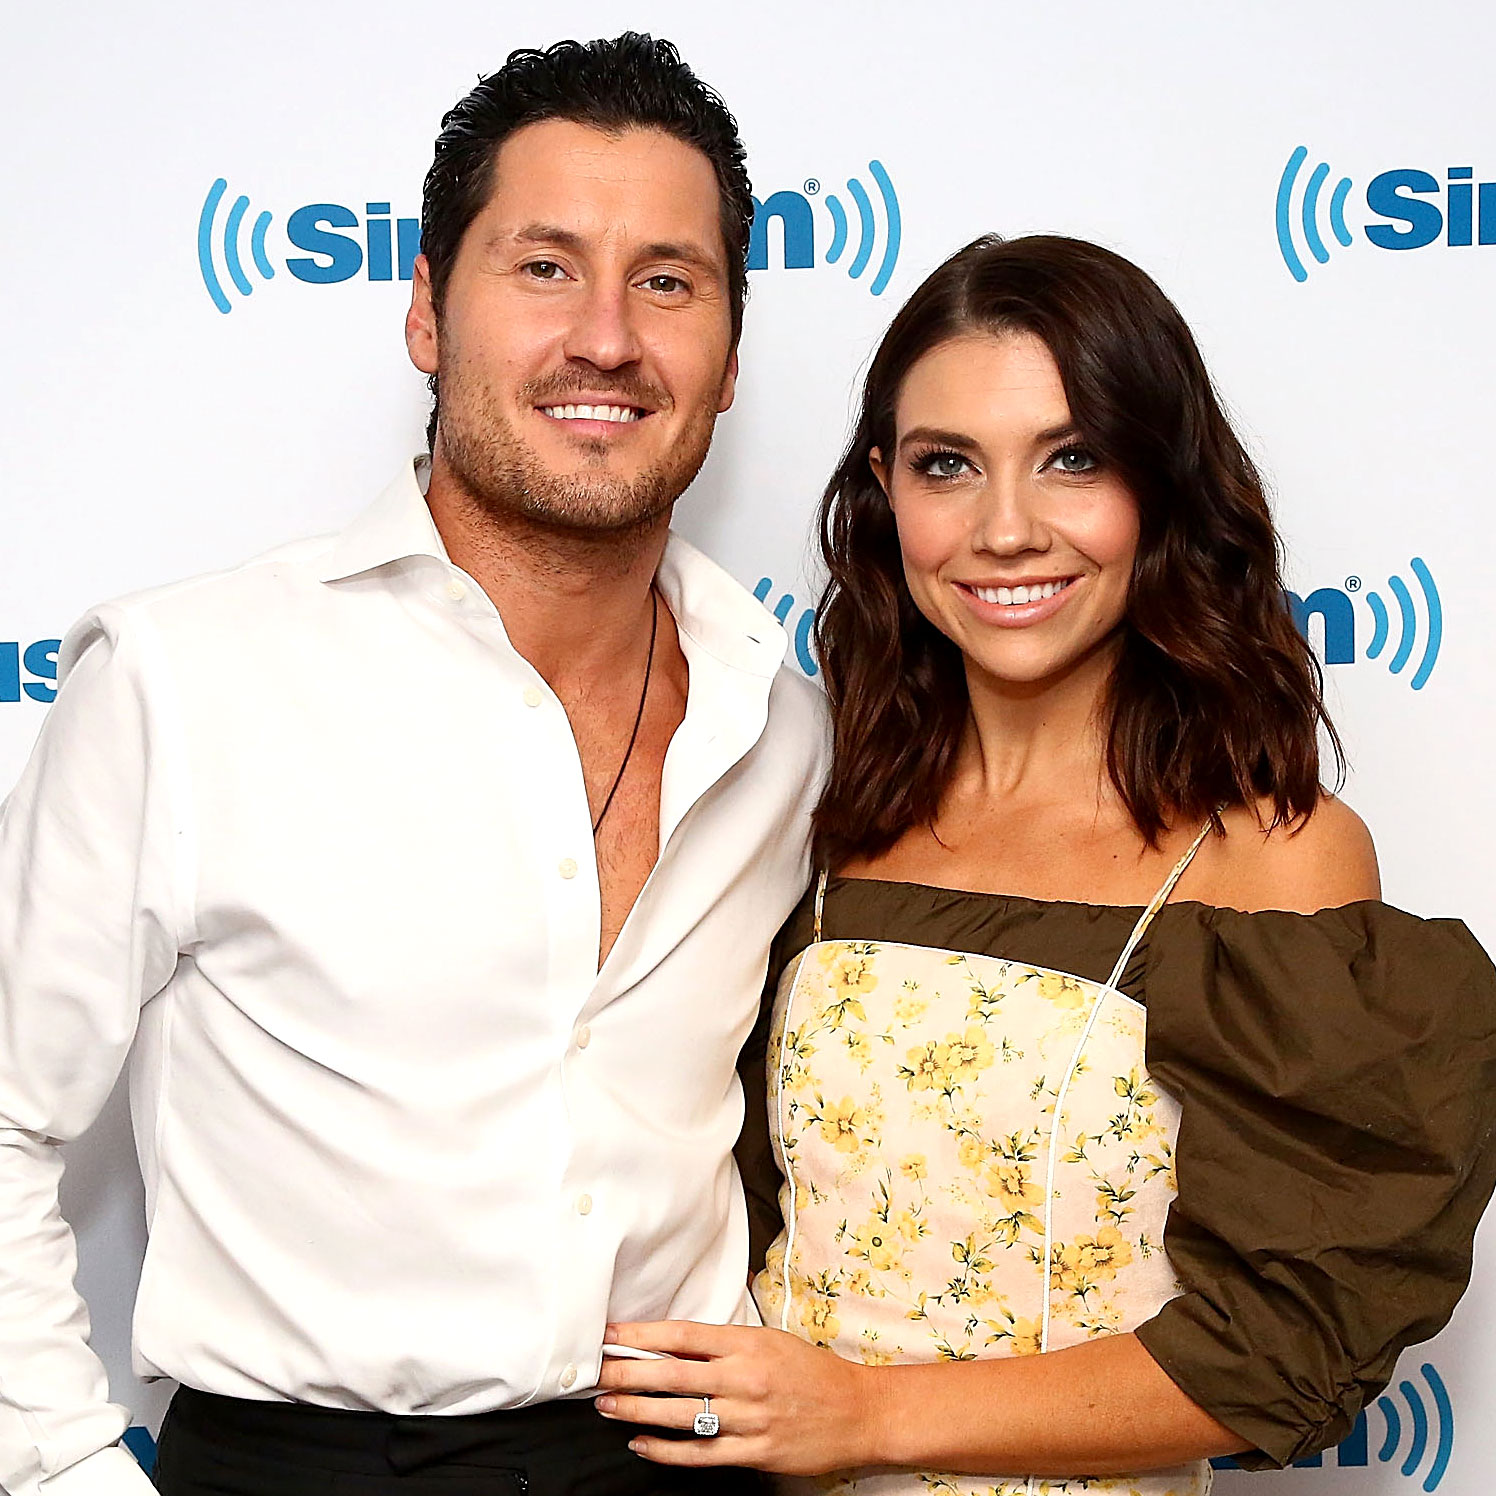 Celebs Party Val Chmerkovskiy Jenna Johnson Wedding - NEW YORK, NY – NOVEMBER 20: (EXCLUSIVE COVERAGE) (L-R) Dancer Val Chmerkovskiy and Jenna Johnson visit the SiriusXM studios on November 20, 2018 in New York City. (Photo by Astrid Stawiarz/Getty Images)